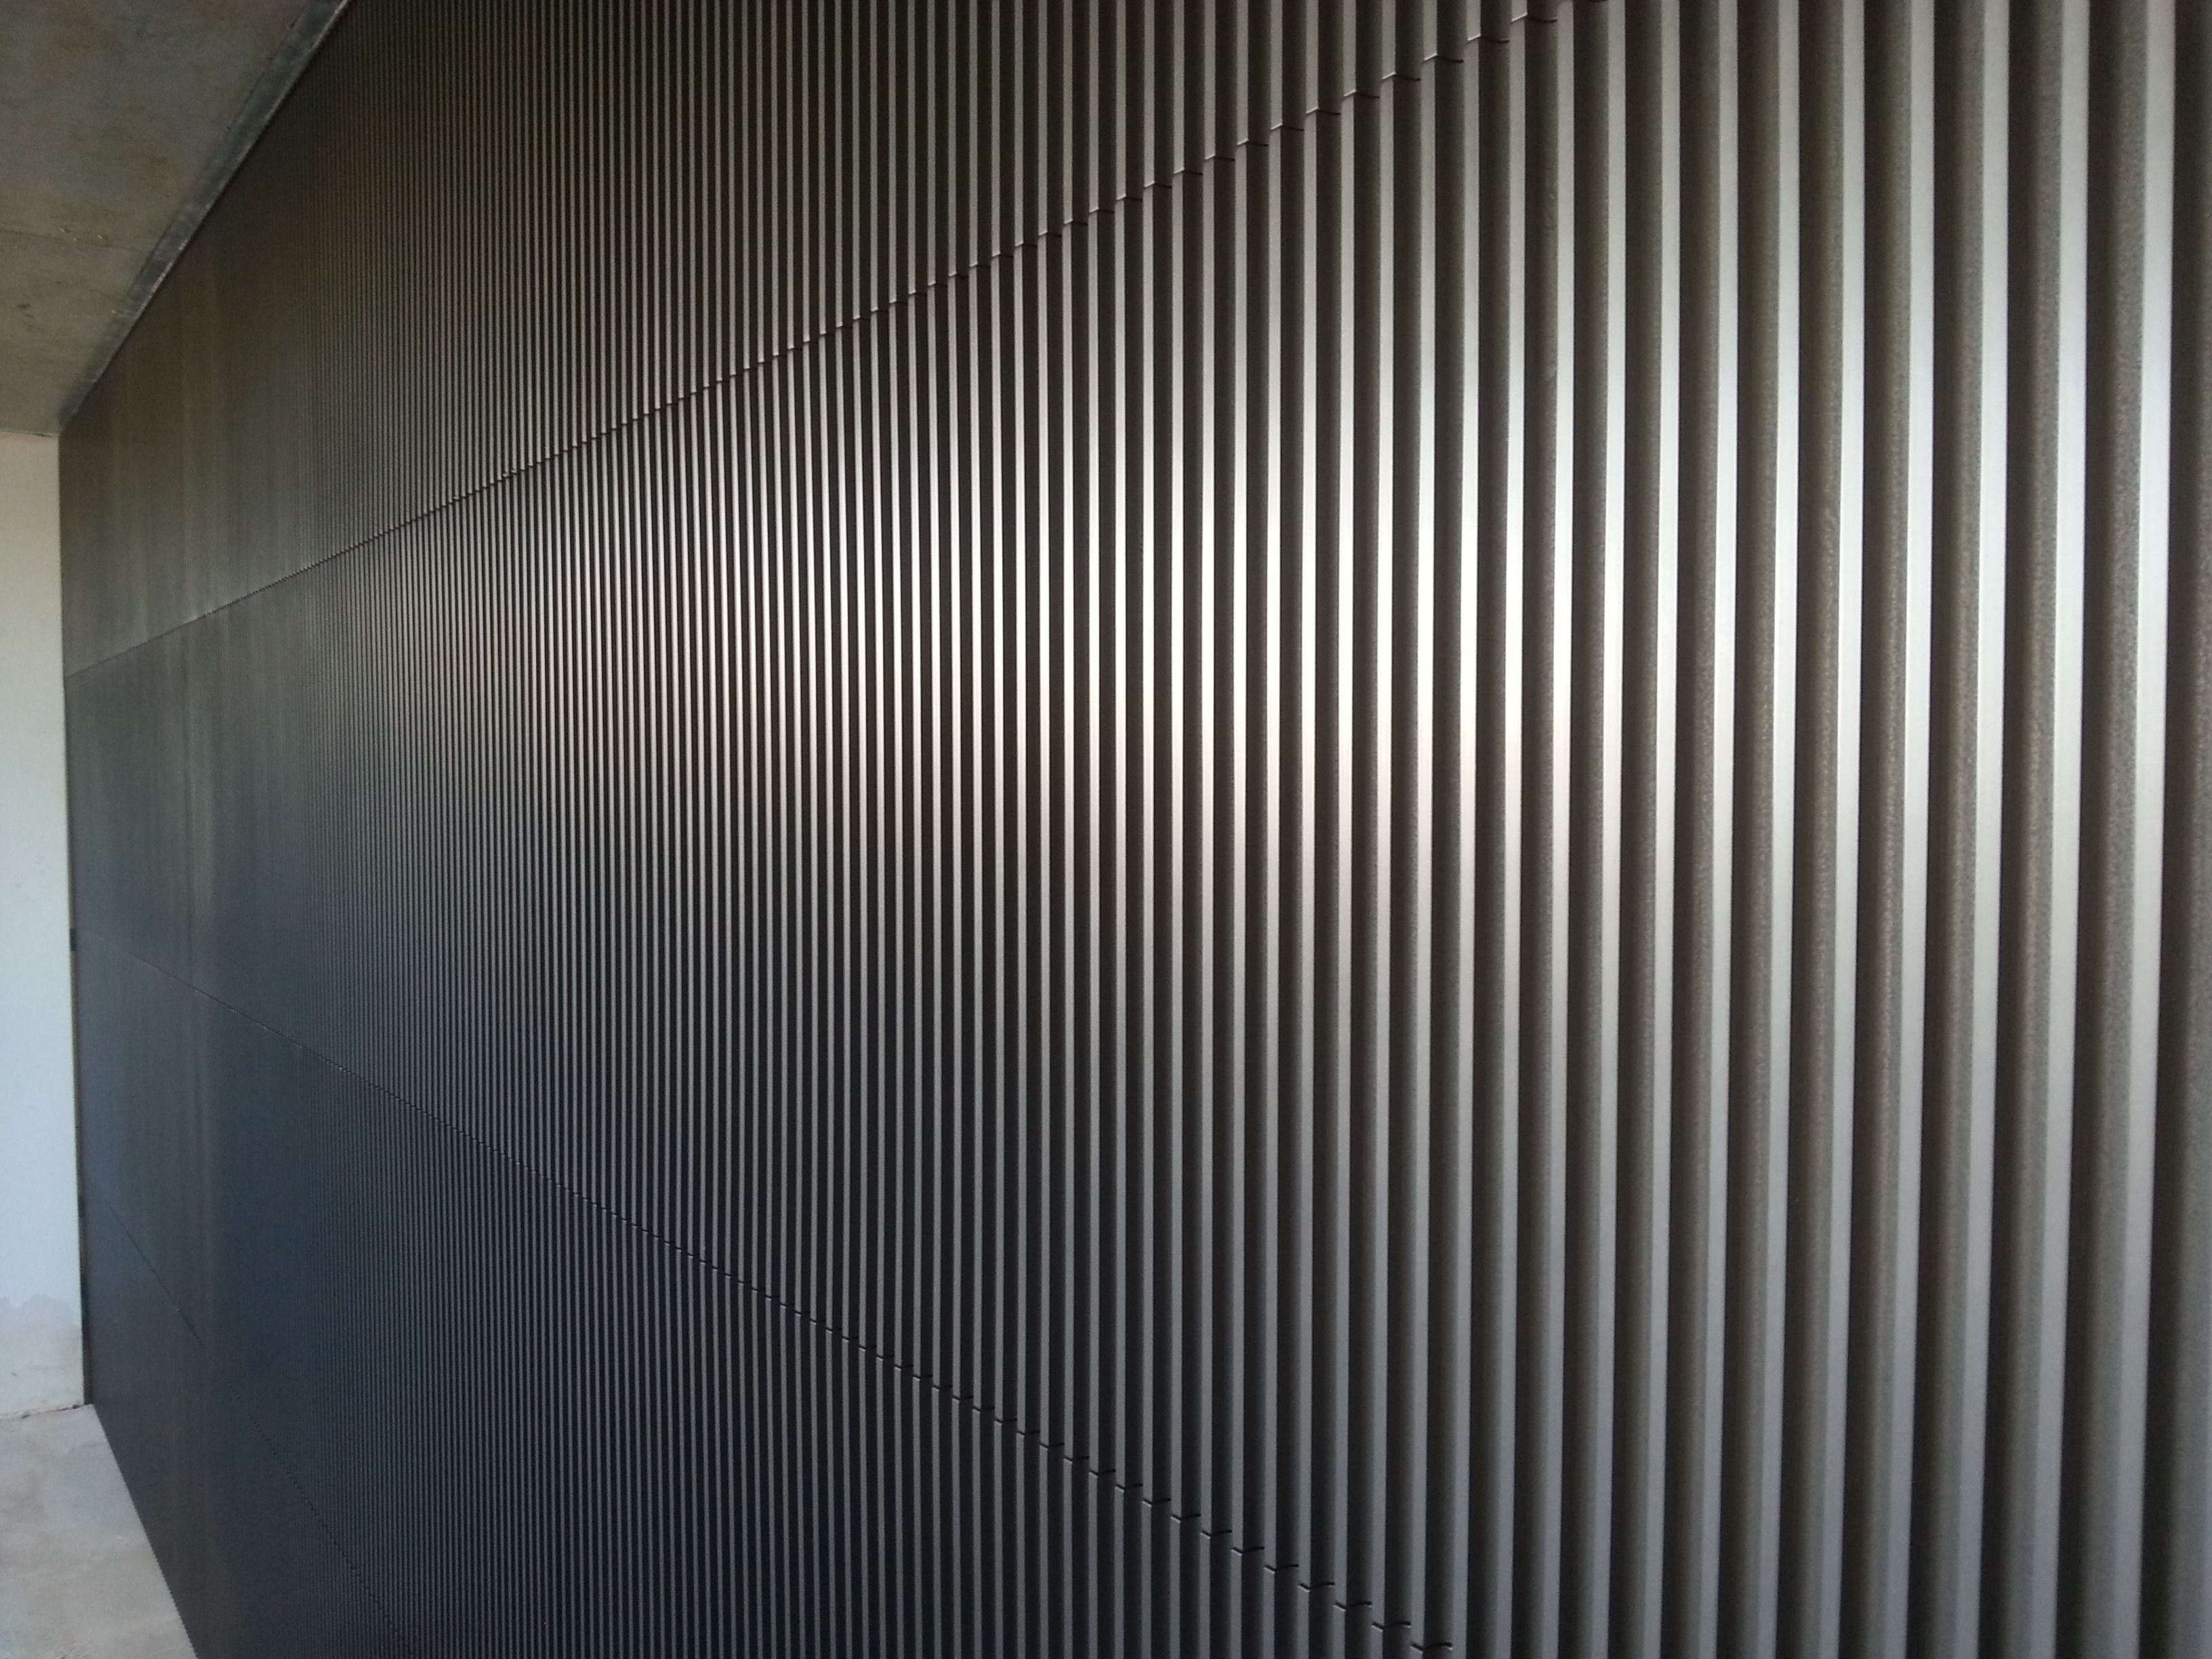 Axolotl Metal Custom 3d Routed Panels Garage Door